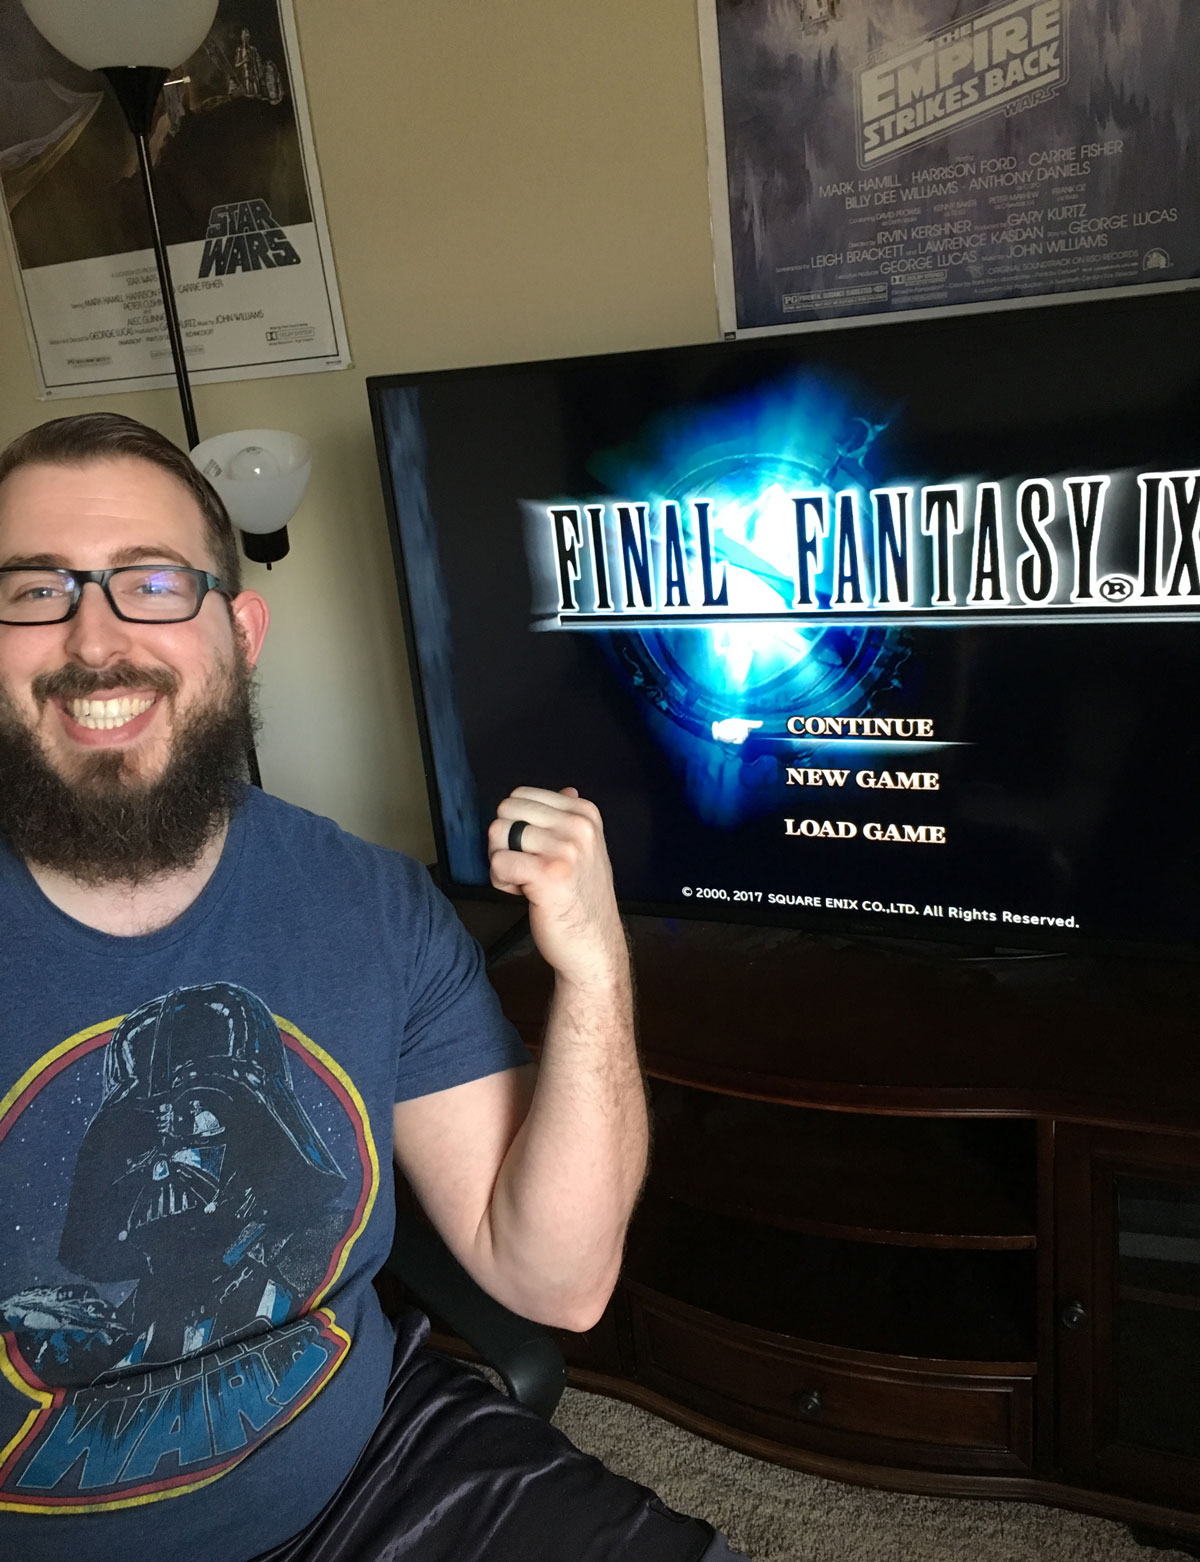 Final Fantasy® IX: B.C. Minton on Why I'm A Gamer